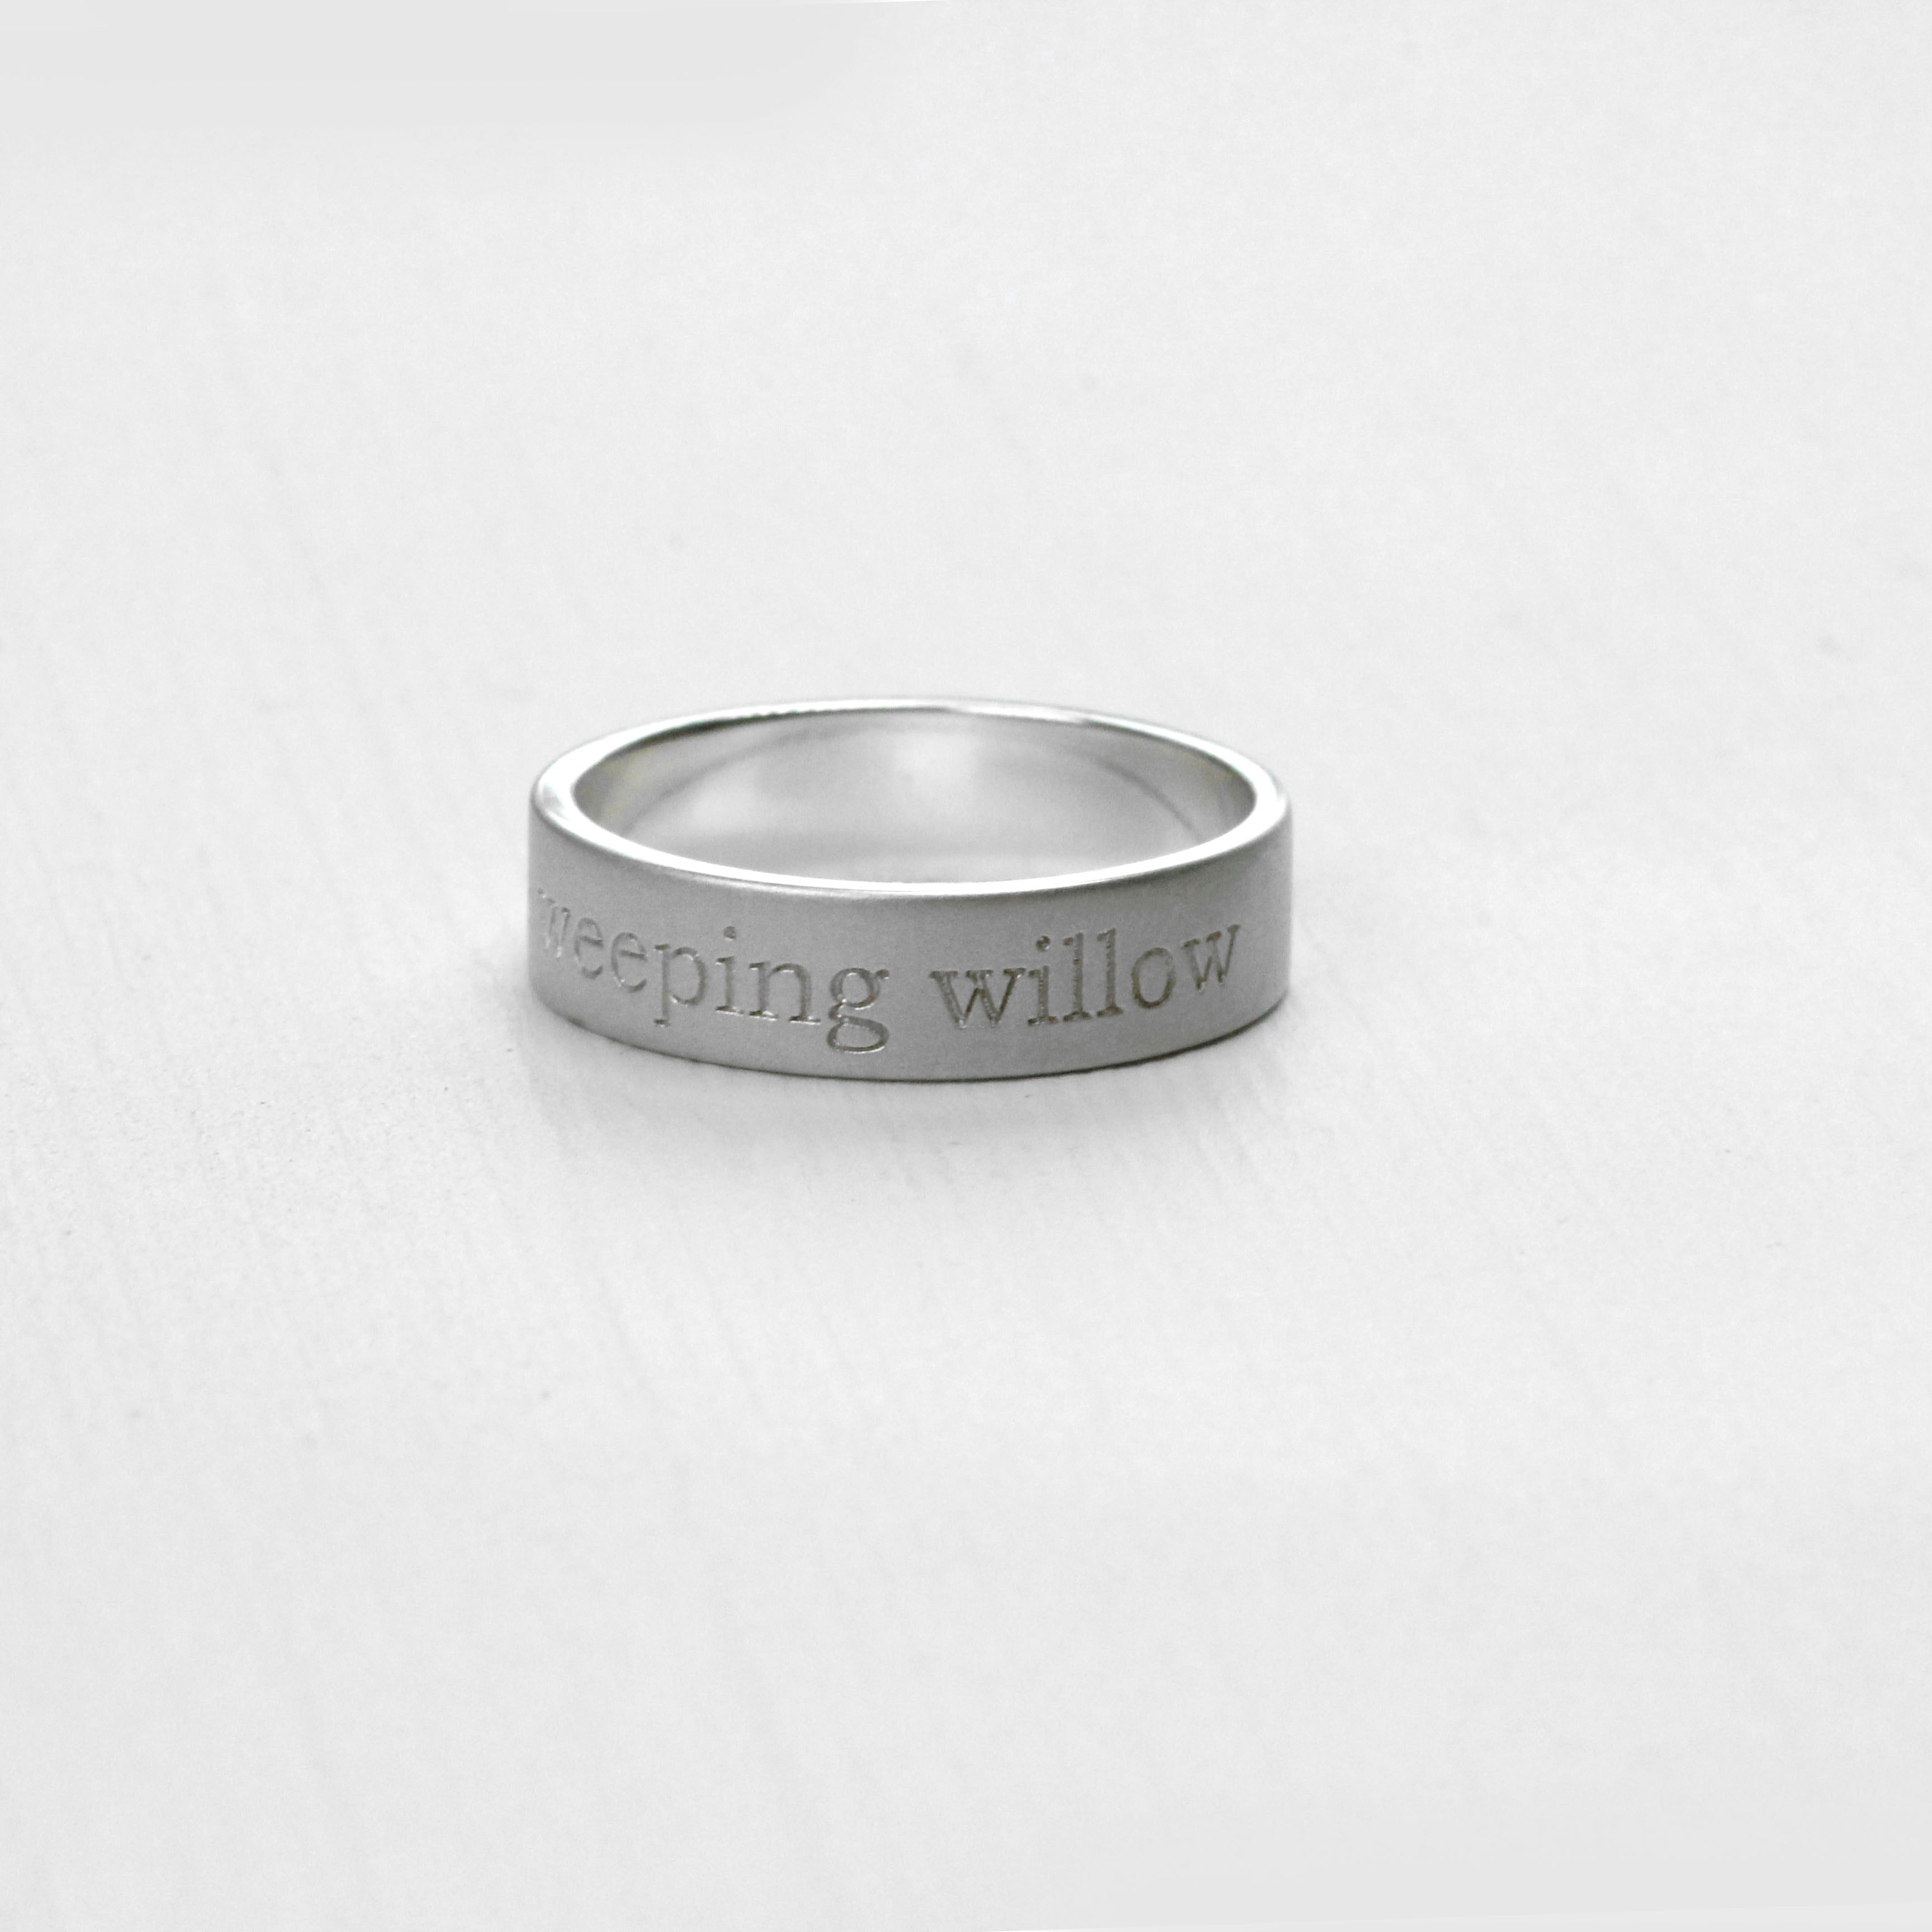 Engraved Wedding Band Ring 14k Gold Wedding Band - Celestial Diamonds ® by Midwinter Co.